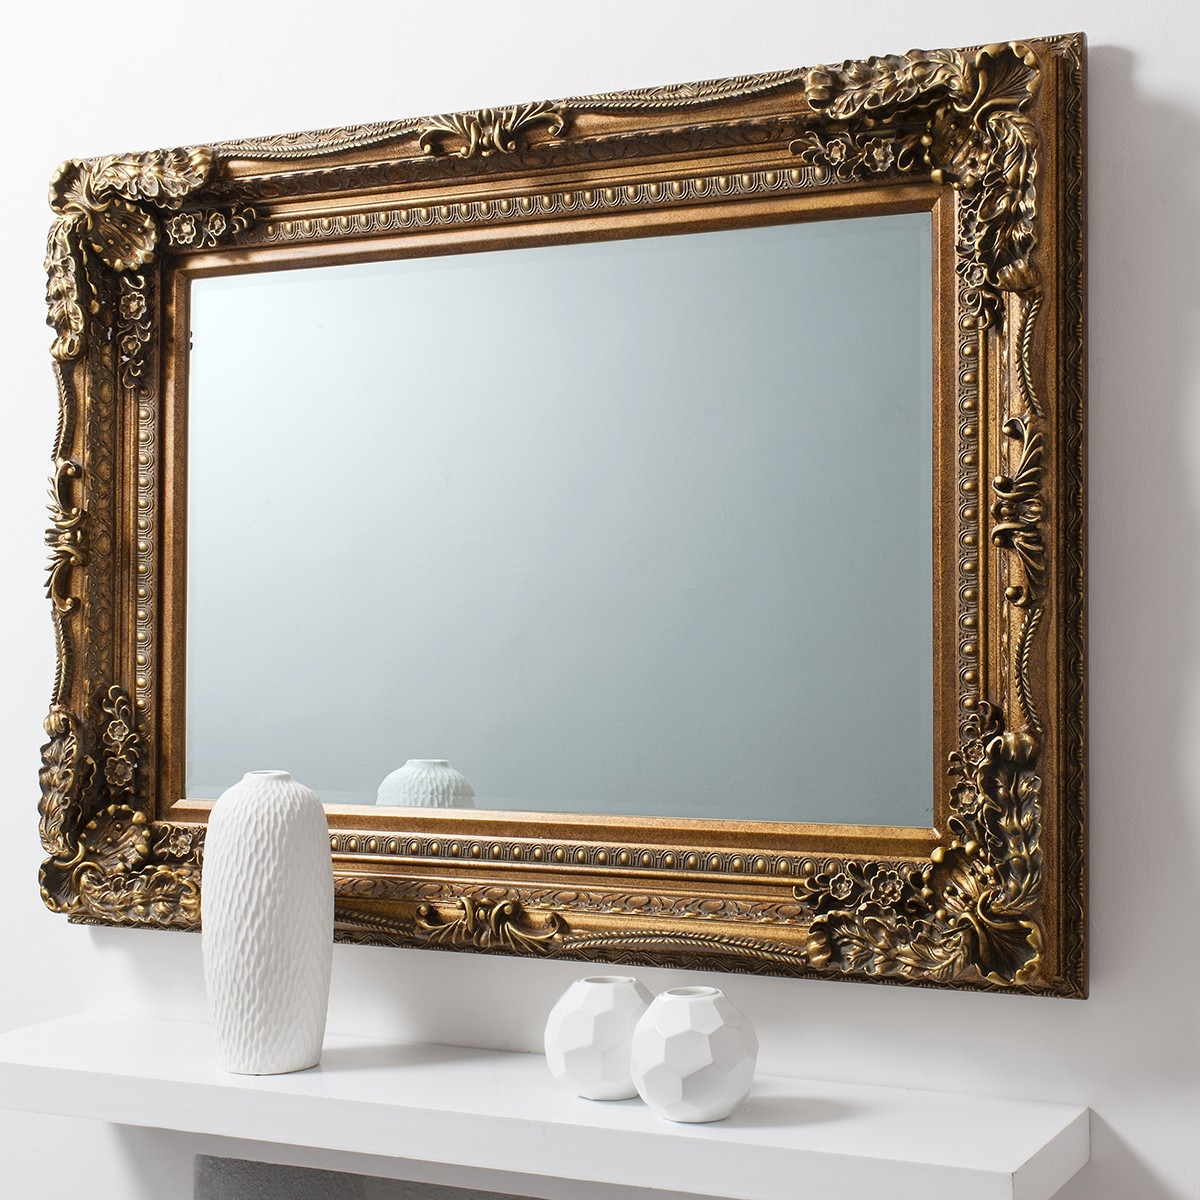 Versailles Baroque Mirror From 189 Luxury Wall Mirrors Ashden With Regard To Baroque Mirror (View 4 of 15)